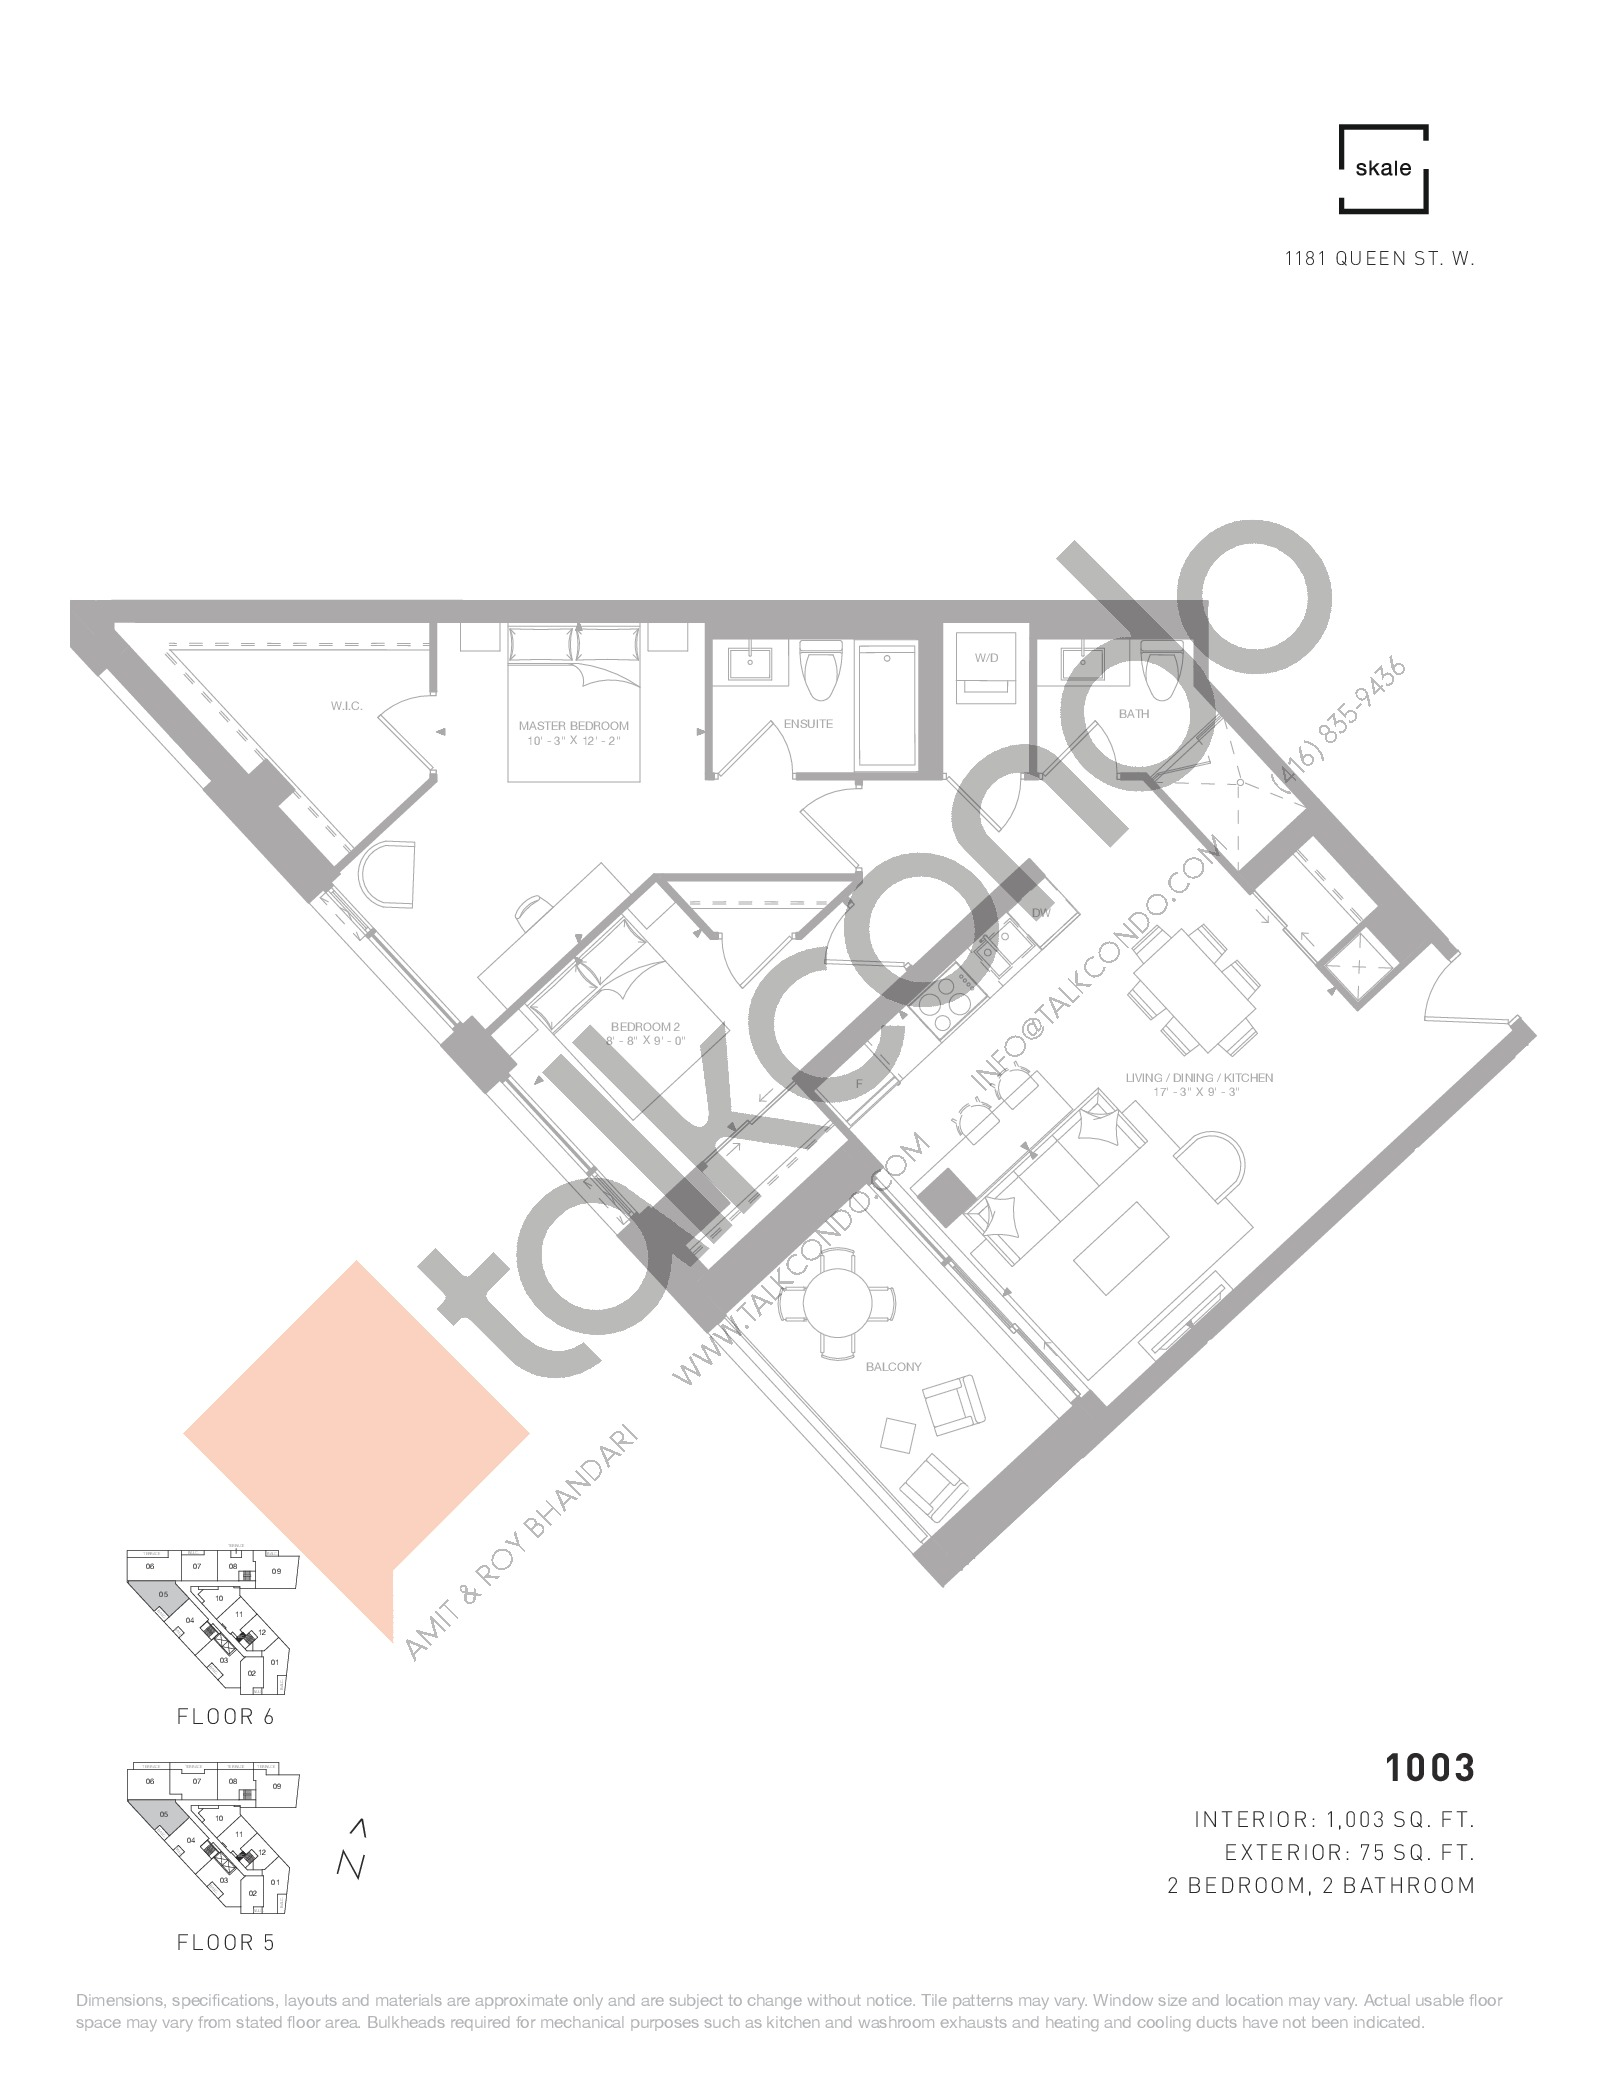 1003 Floor Plan at 1181 Queen West Condos - 1003 sq.ft